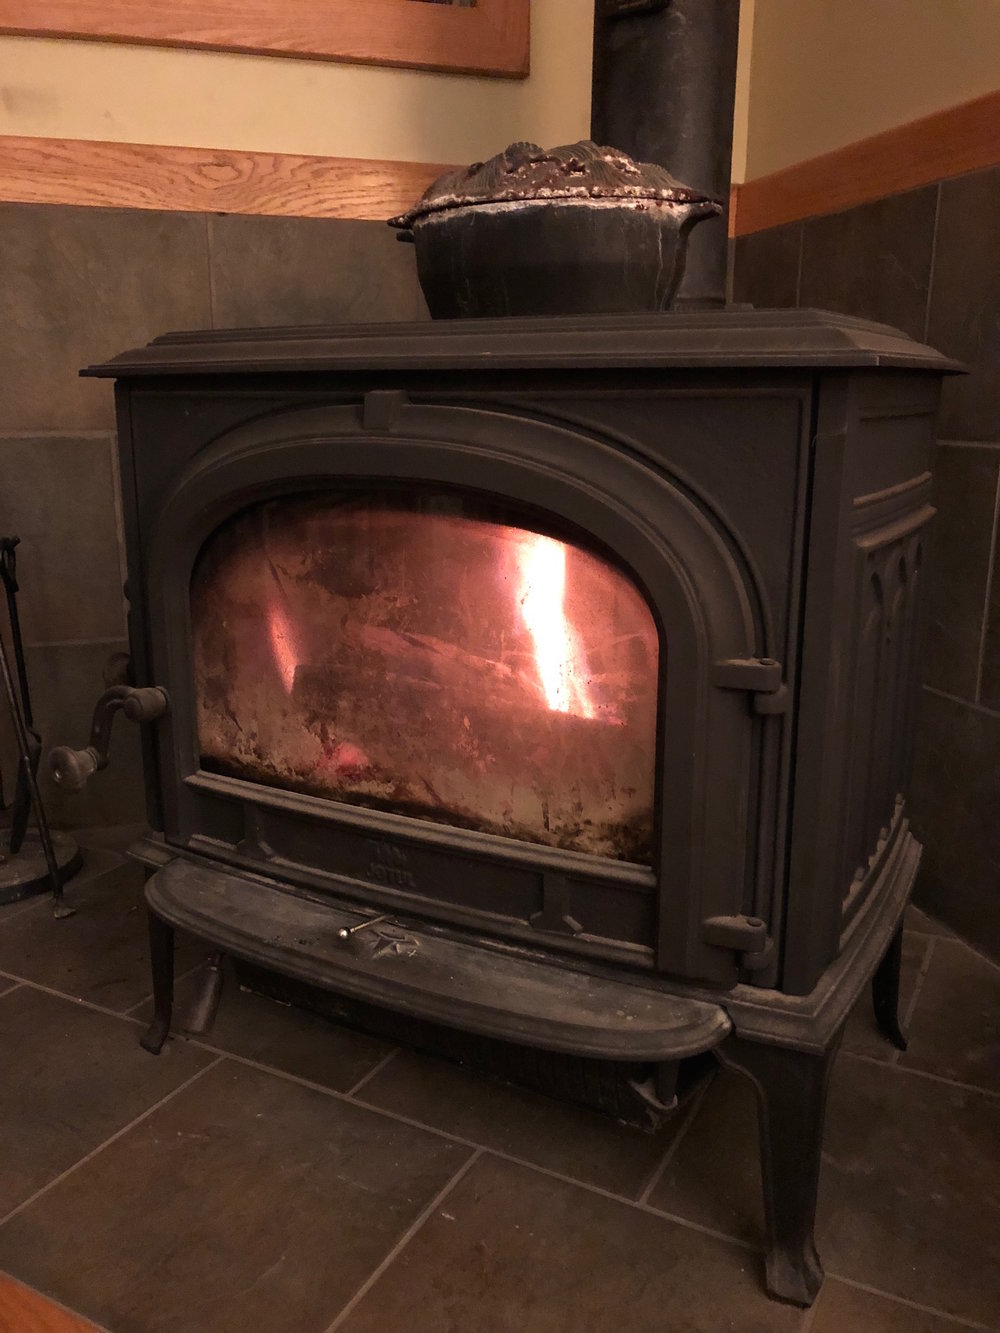 Our trusty Jøtel woodstove, warming us this chilly night.